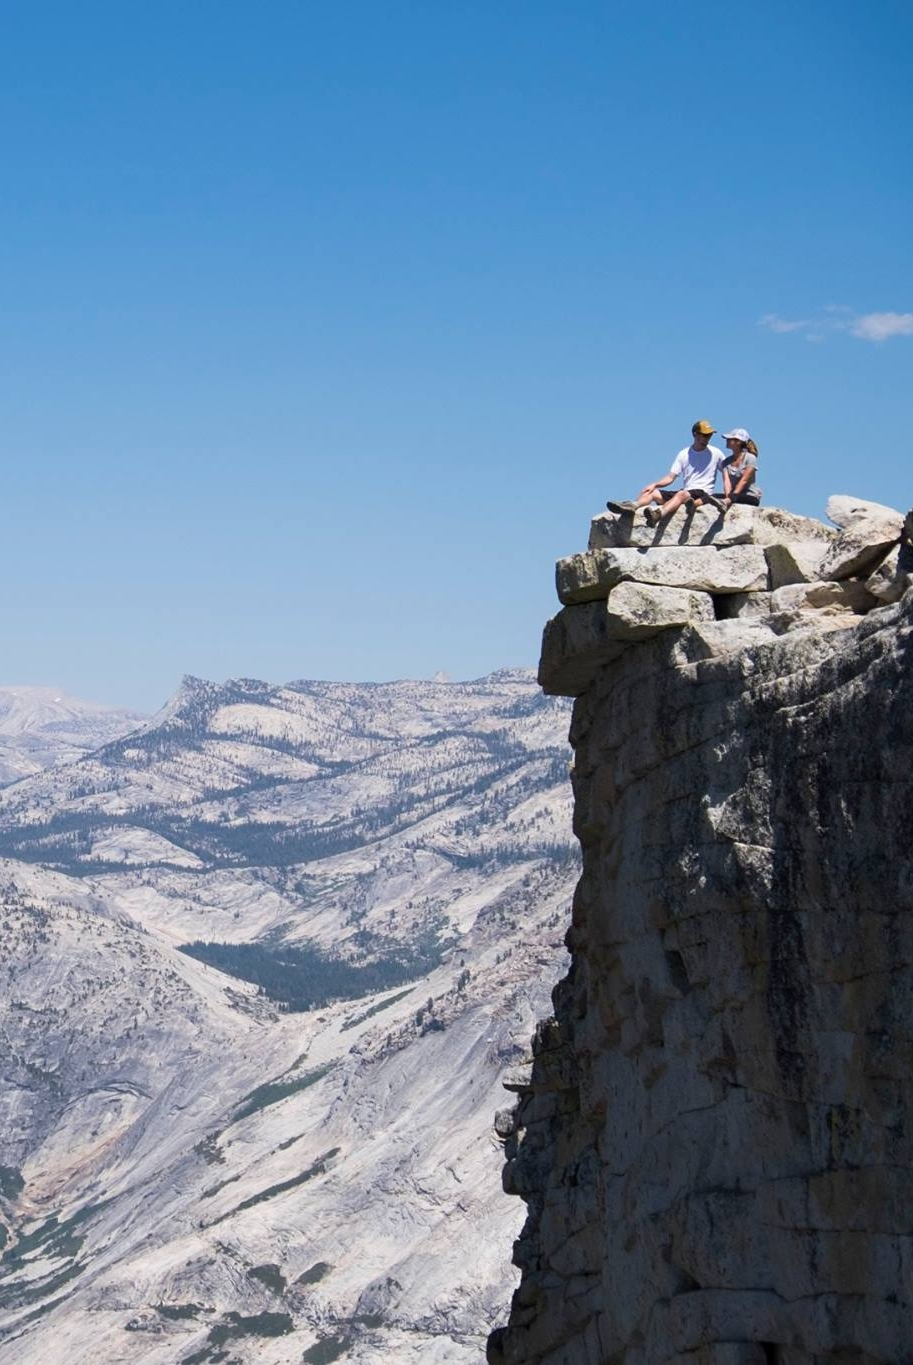 Half Dome, Yosemite2016 - This is us enjoying a triumphant rest on the mountain peak. Without any prep we relied on our dwindling reserves of youthful energy and hiked over 16 miles on this very long day. We probably won't do this again anytime soon, so I'm glad we got some photo evidence to show our future kids.